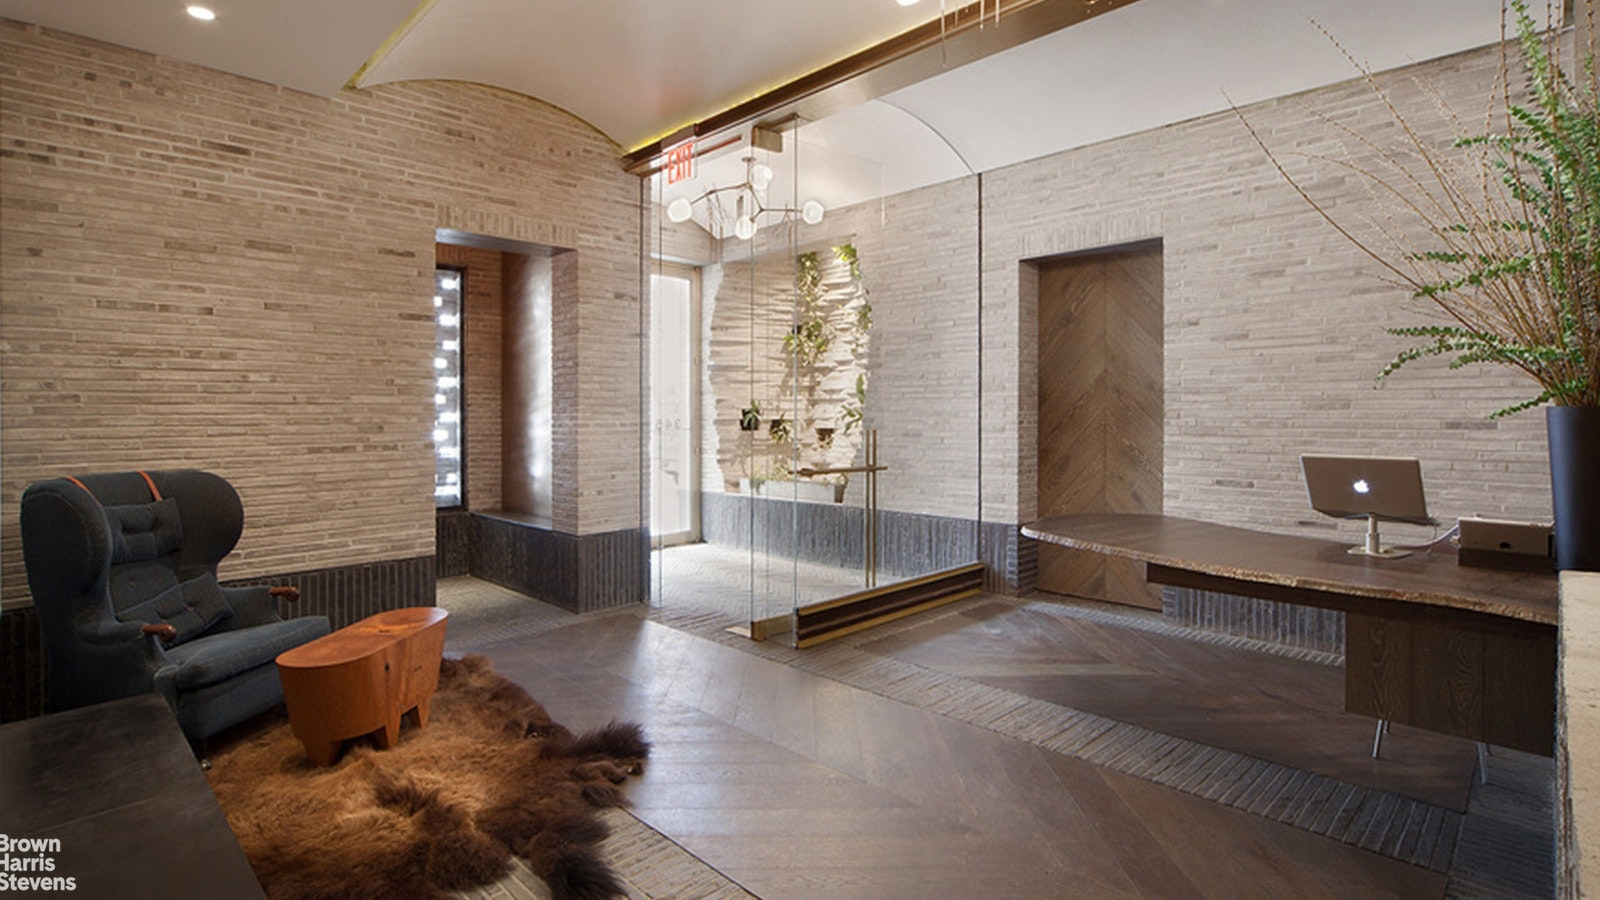 345 West 14th Street 8d, West Village, NYC, 10014, $2,995,000, Property For Sale, Halstead Real Estate, Photo 7